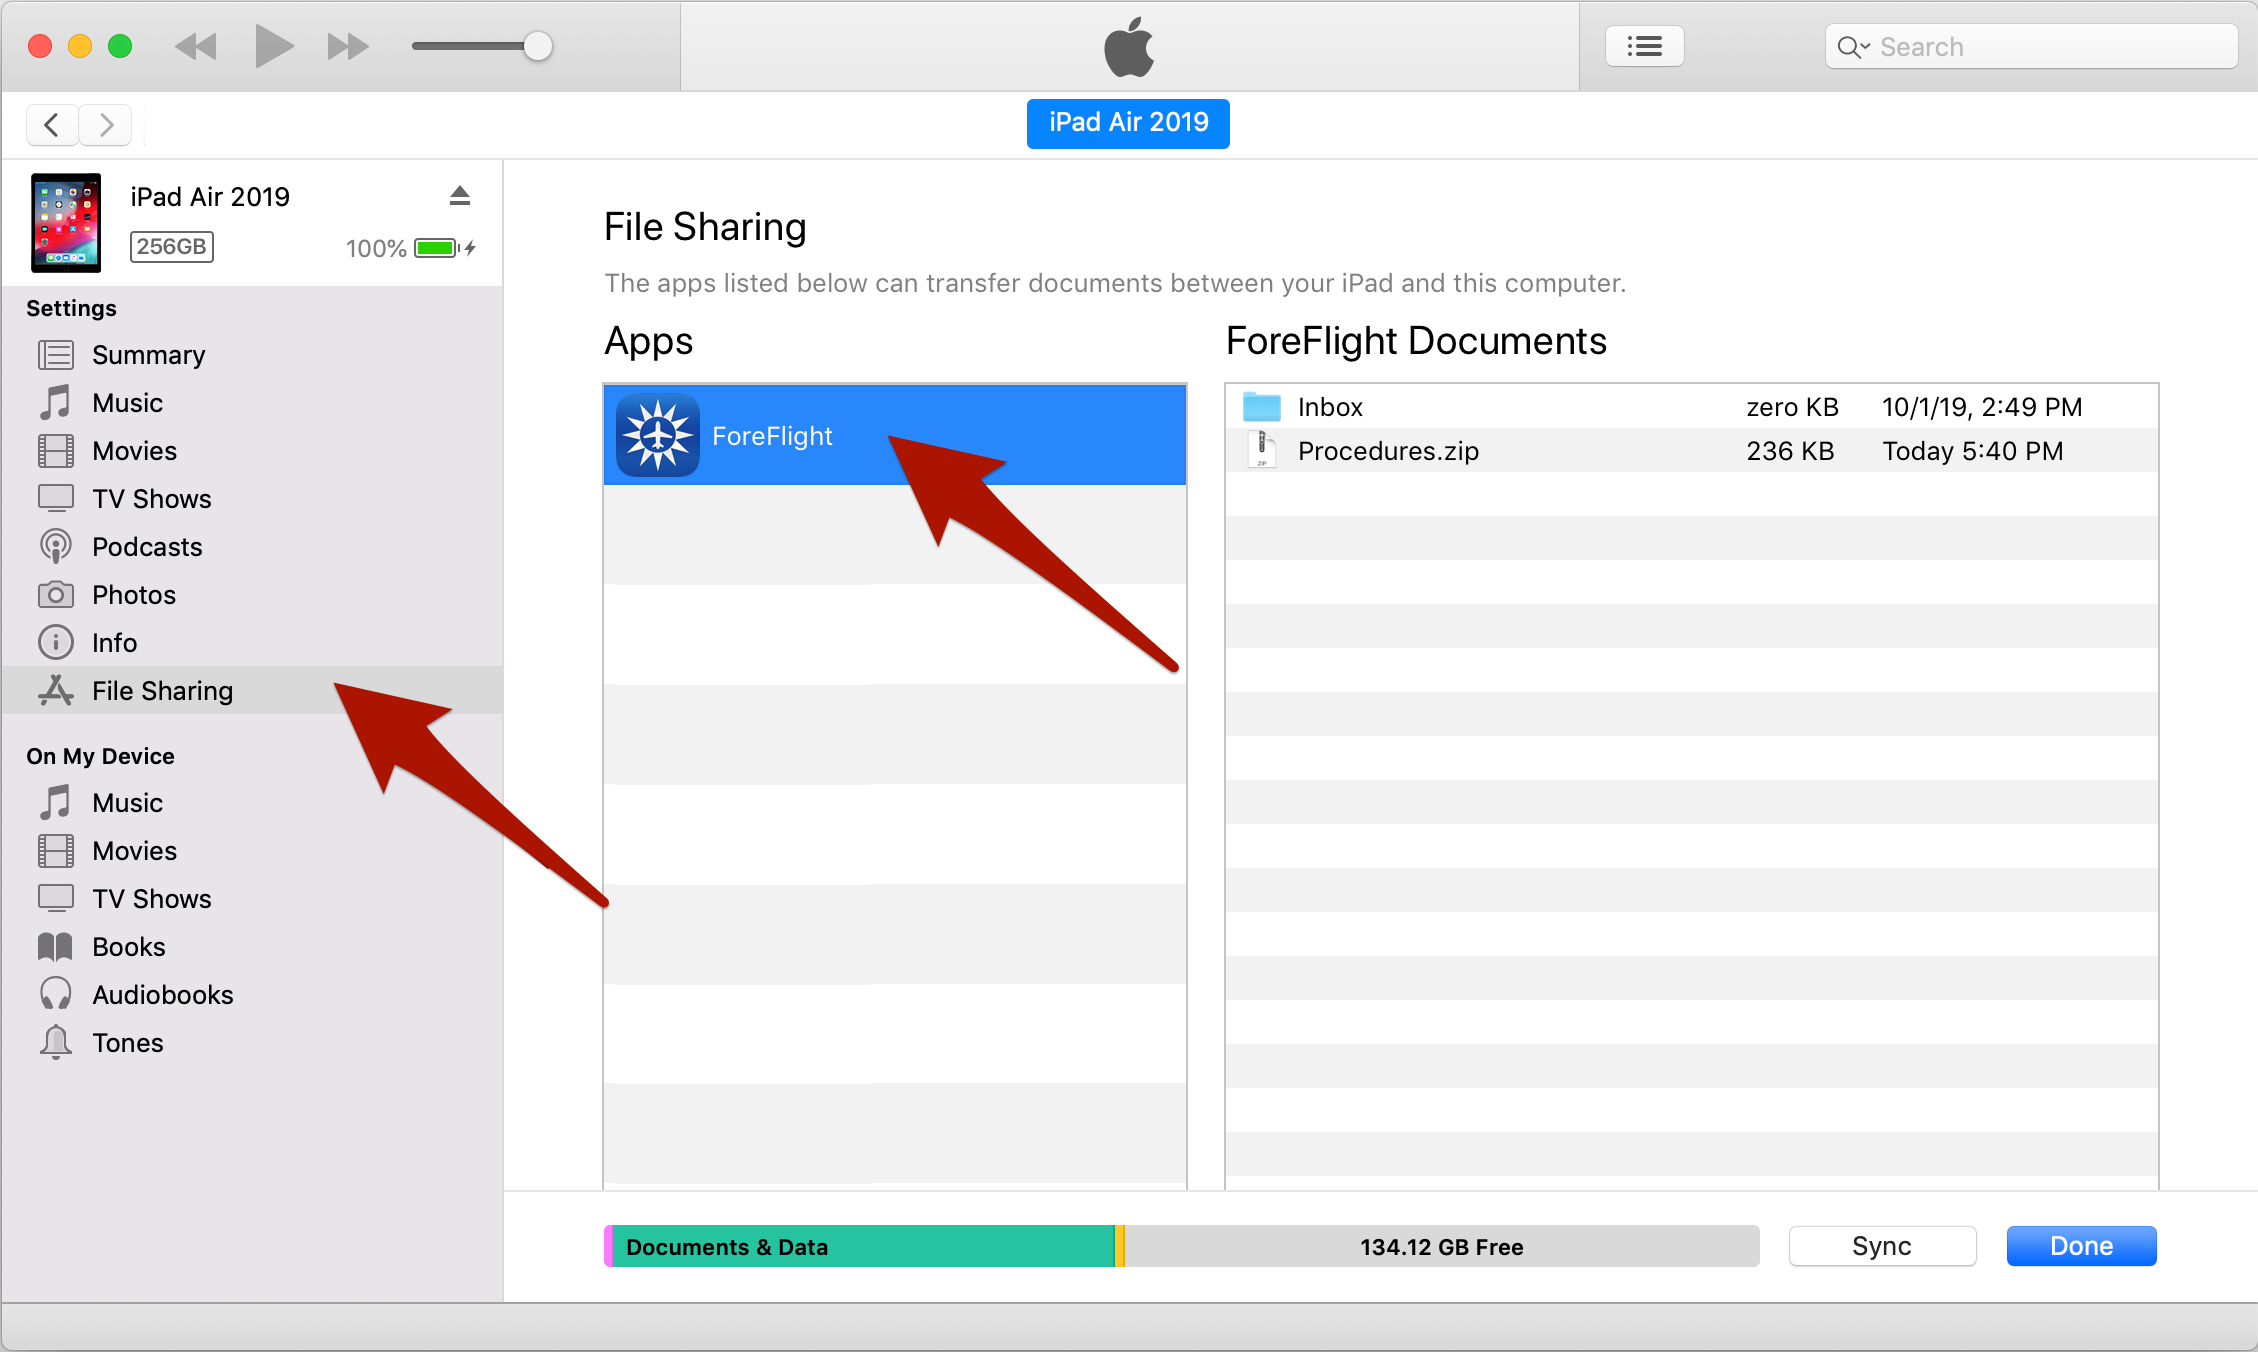 itunes_-_app_list_-_file_sharing.png